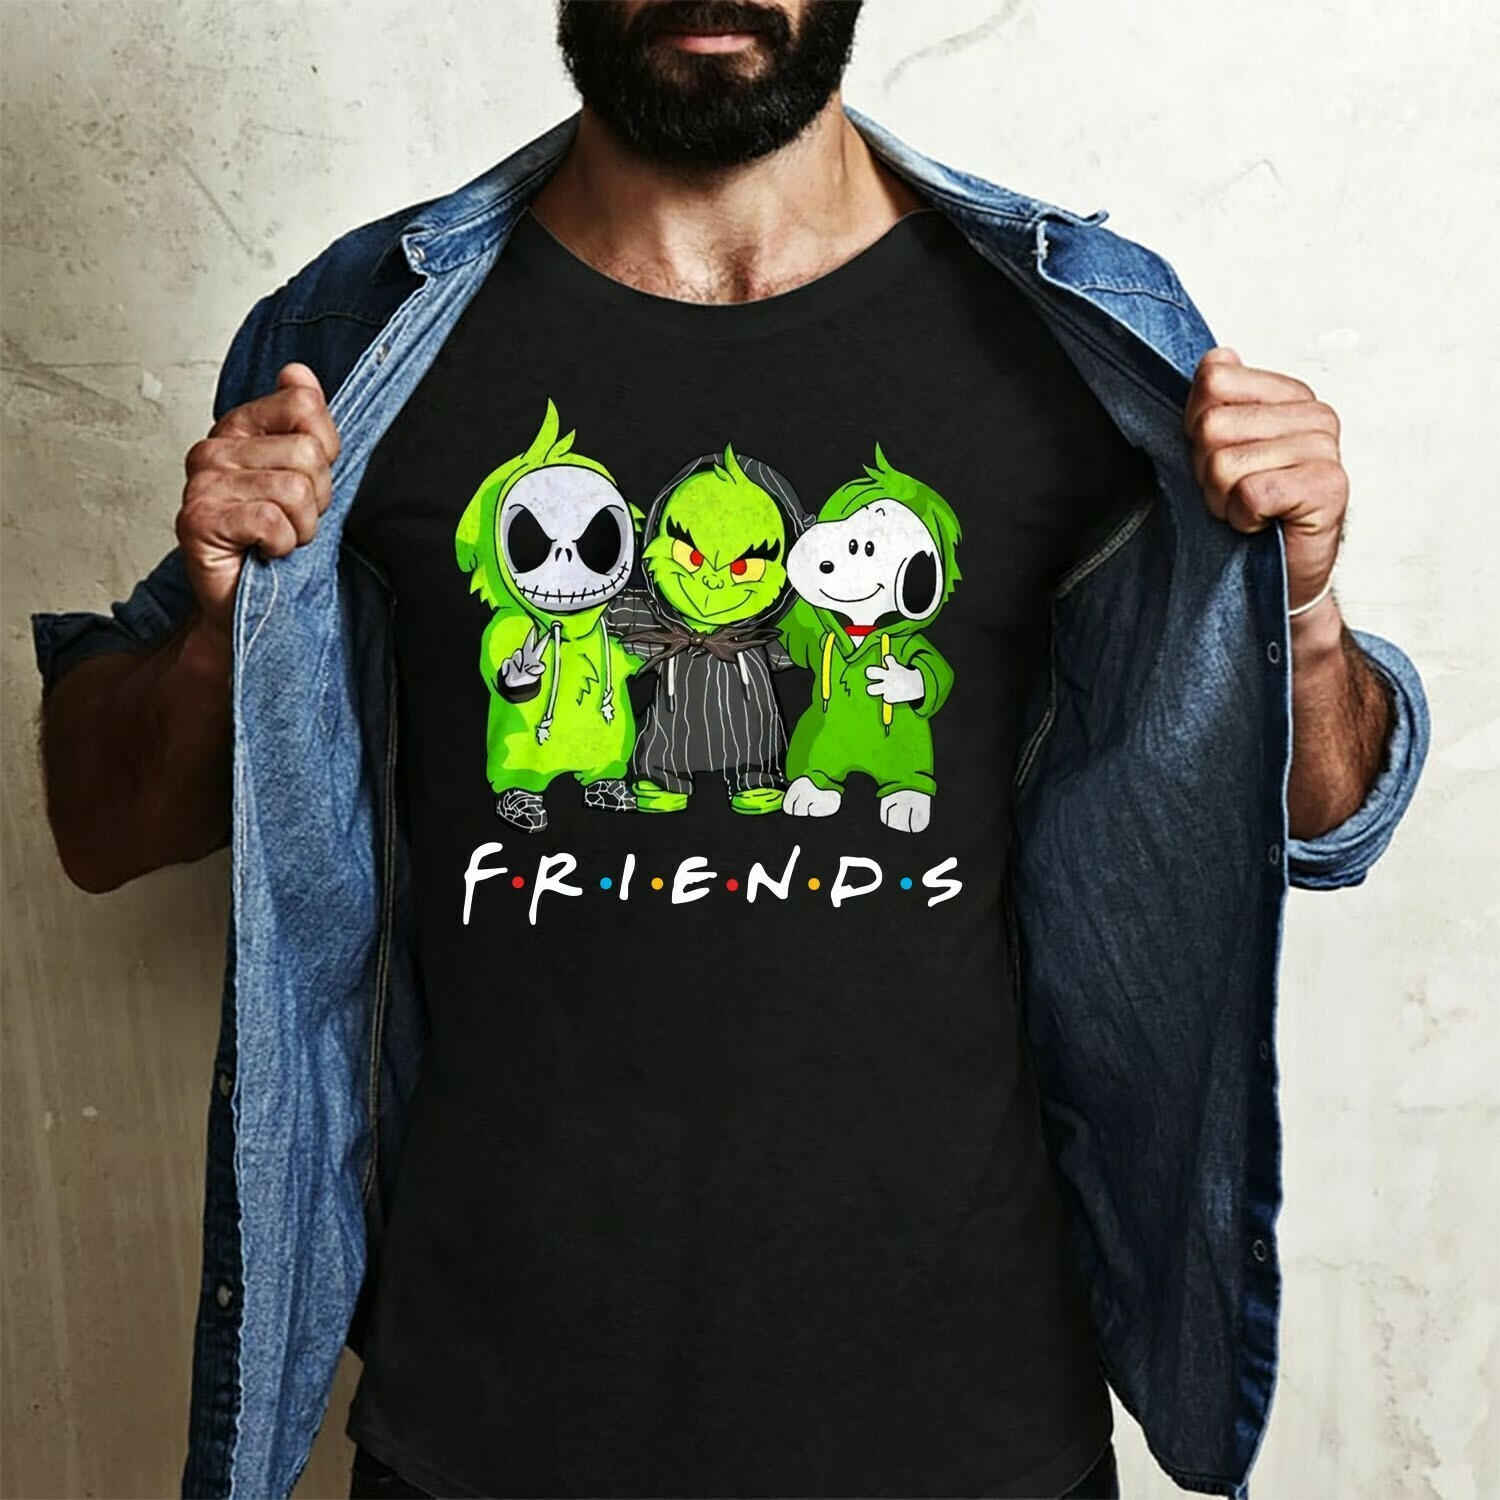 Baby Jack Skellington and Charlie Brown Snoopy The Nightmare Before Christmas,Star Wars Yoda The Grinch Stole Christmas,,Noel Holly T-Shirt Long Sleeve Sweatshirt Hoodie Jolly Family Gifts